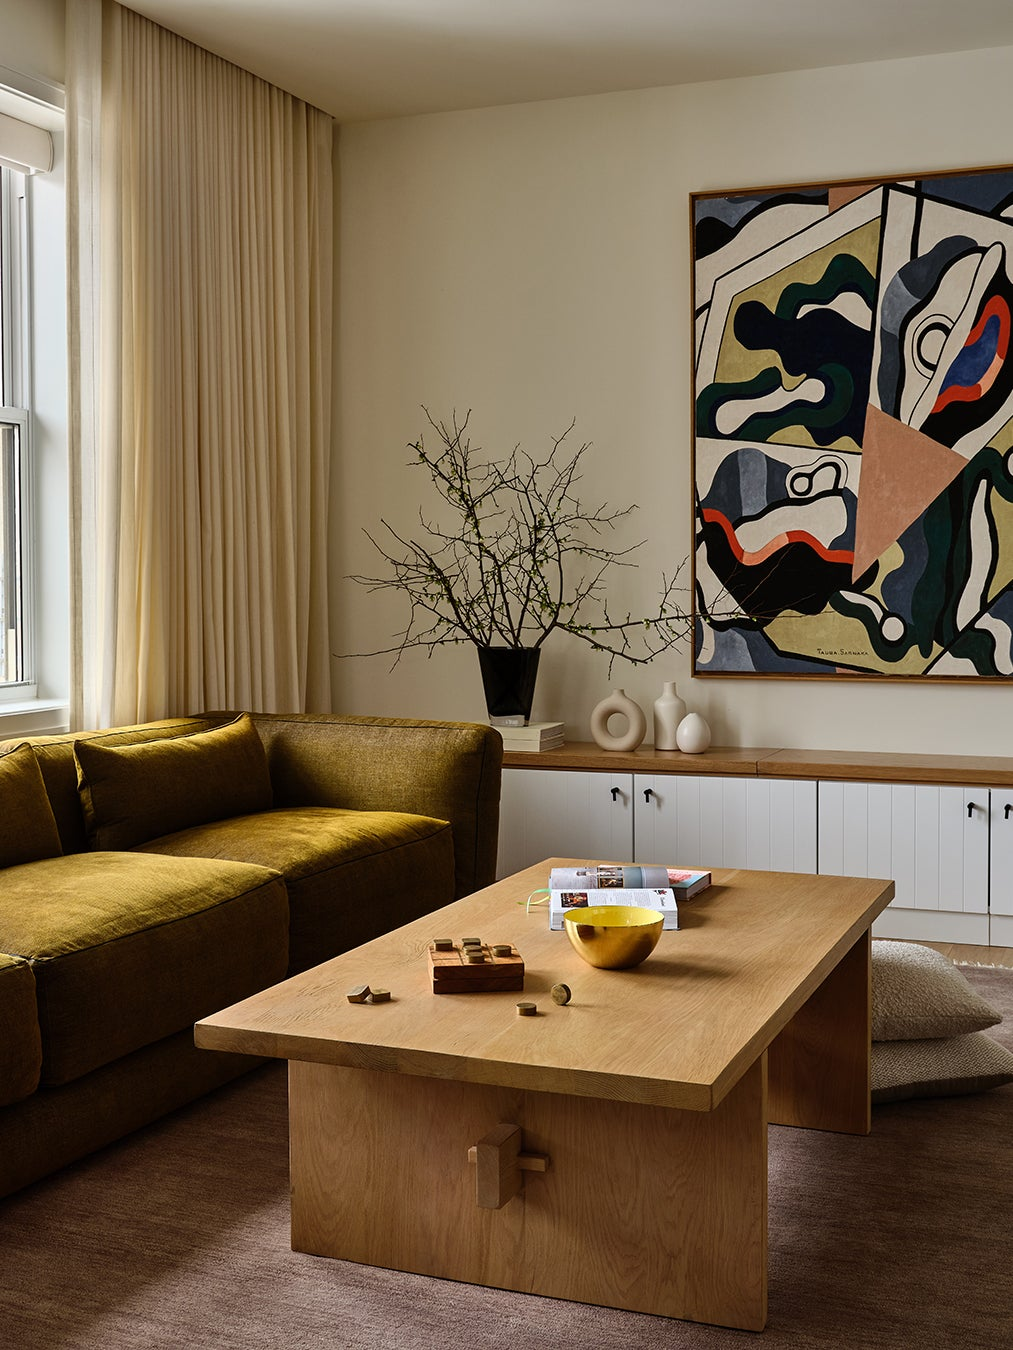 The Architectural Detail That Made This Family Room Work for Everyone